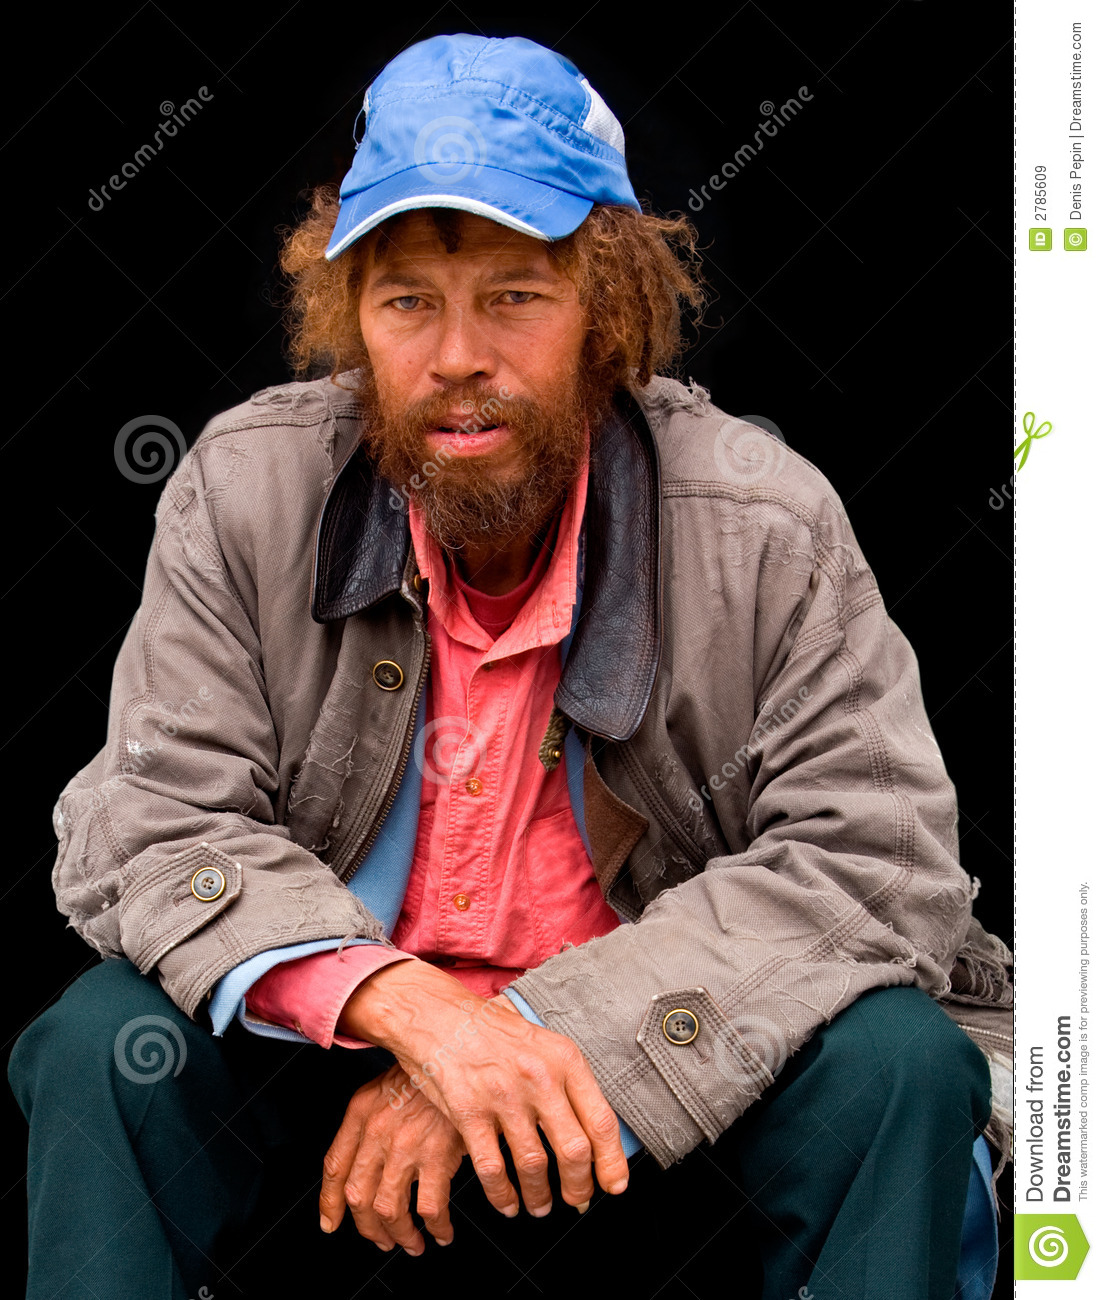 An homeless person is sitting while looking at the camera.